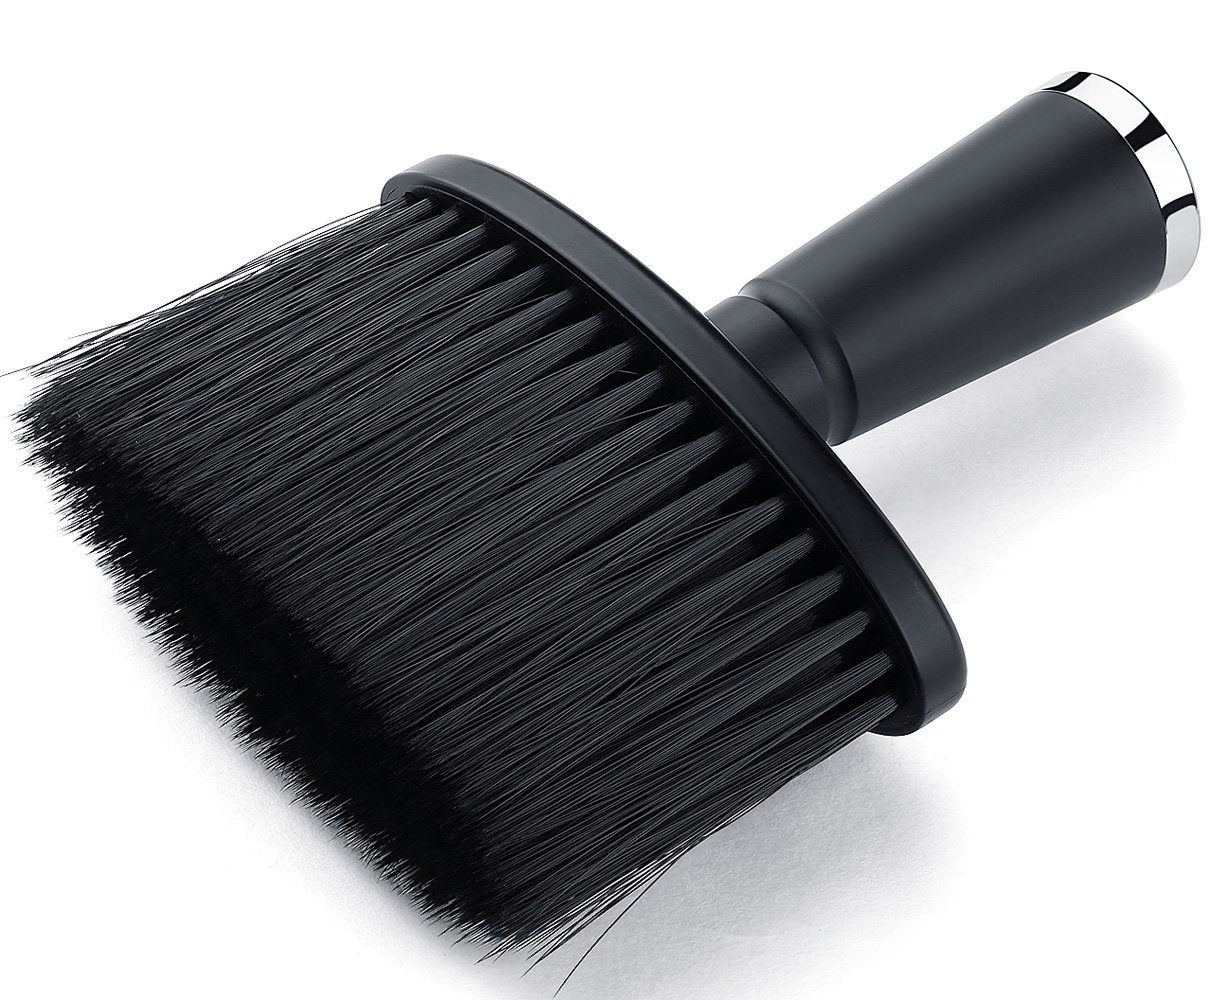 Soft Cleaning Face Brush for Hair Cutting